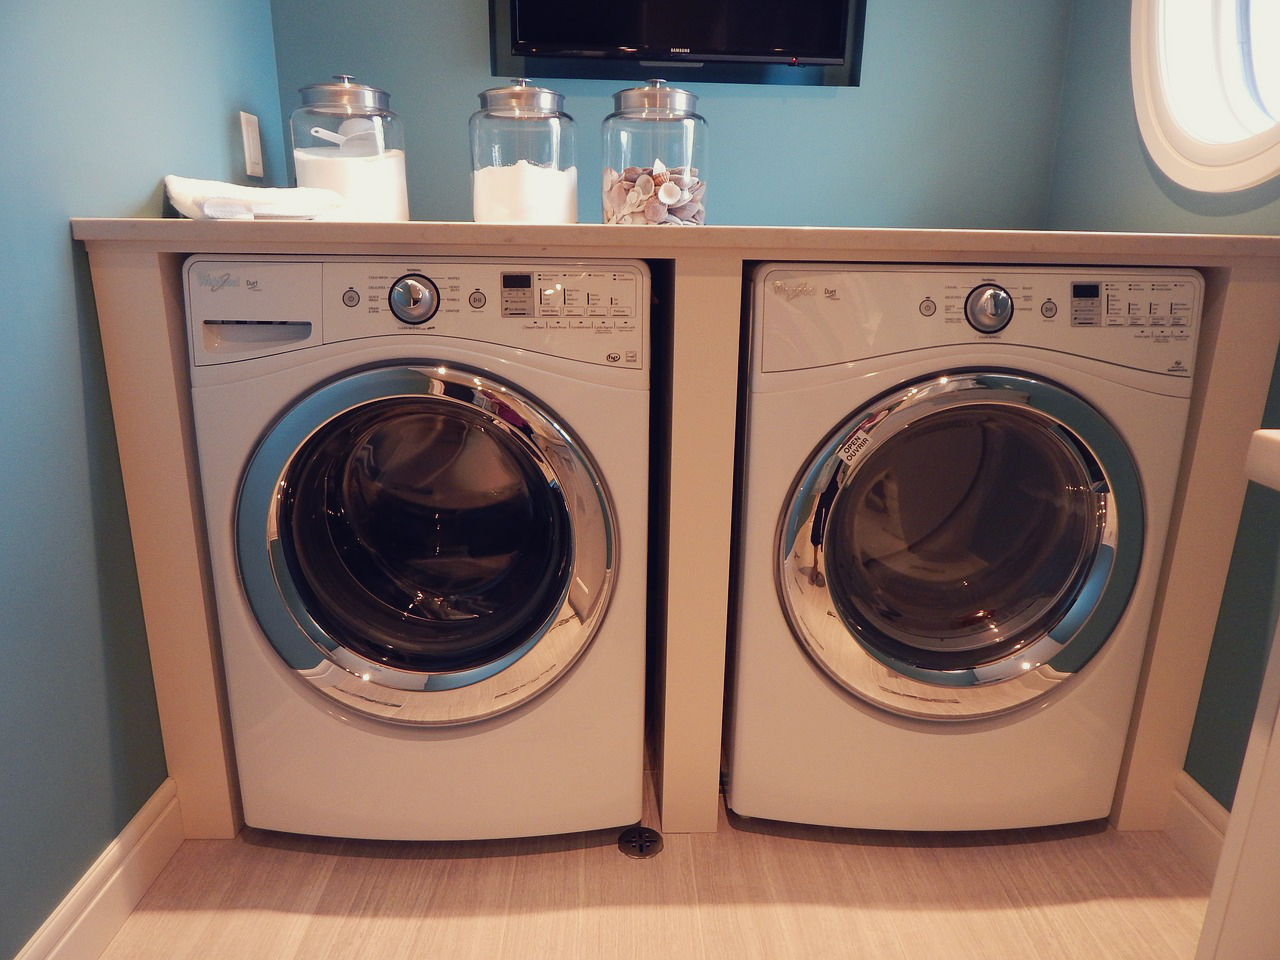 Declutter Your Bathroom & Laundry Room: 8 Things to go